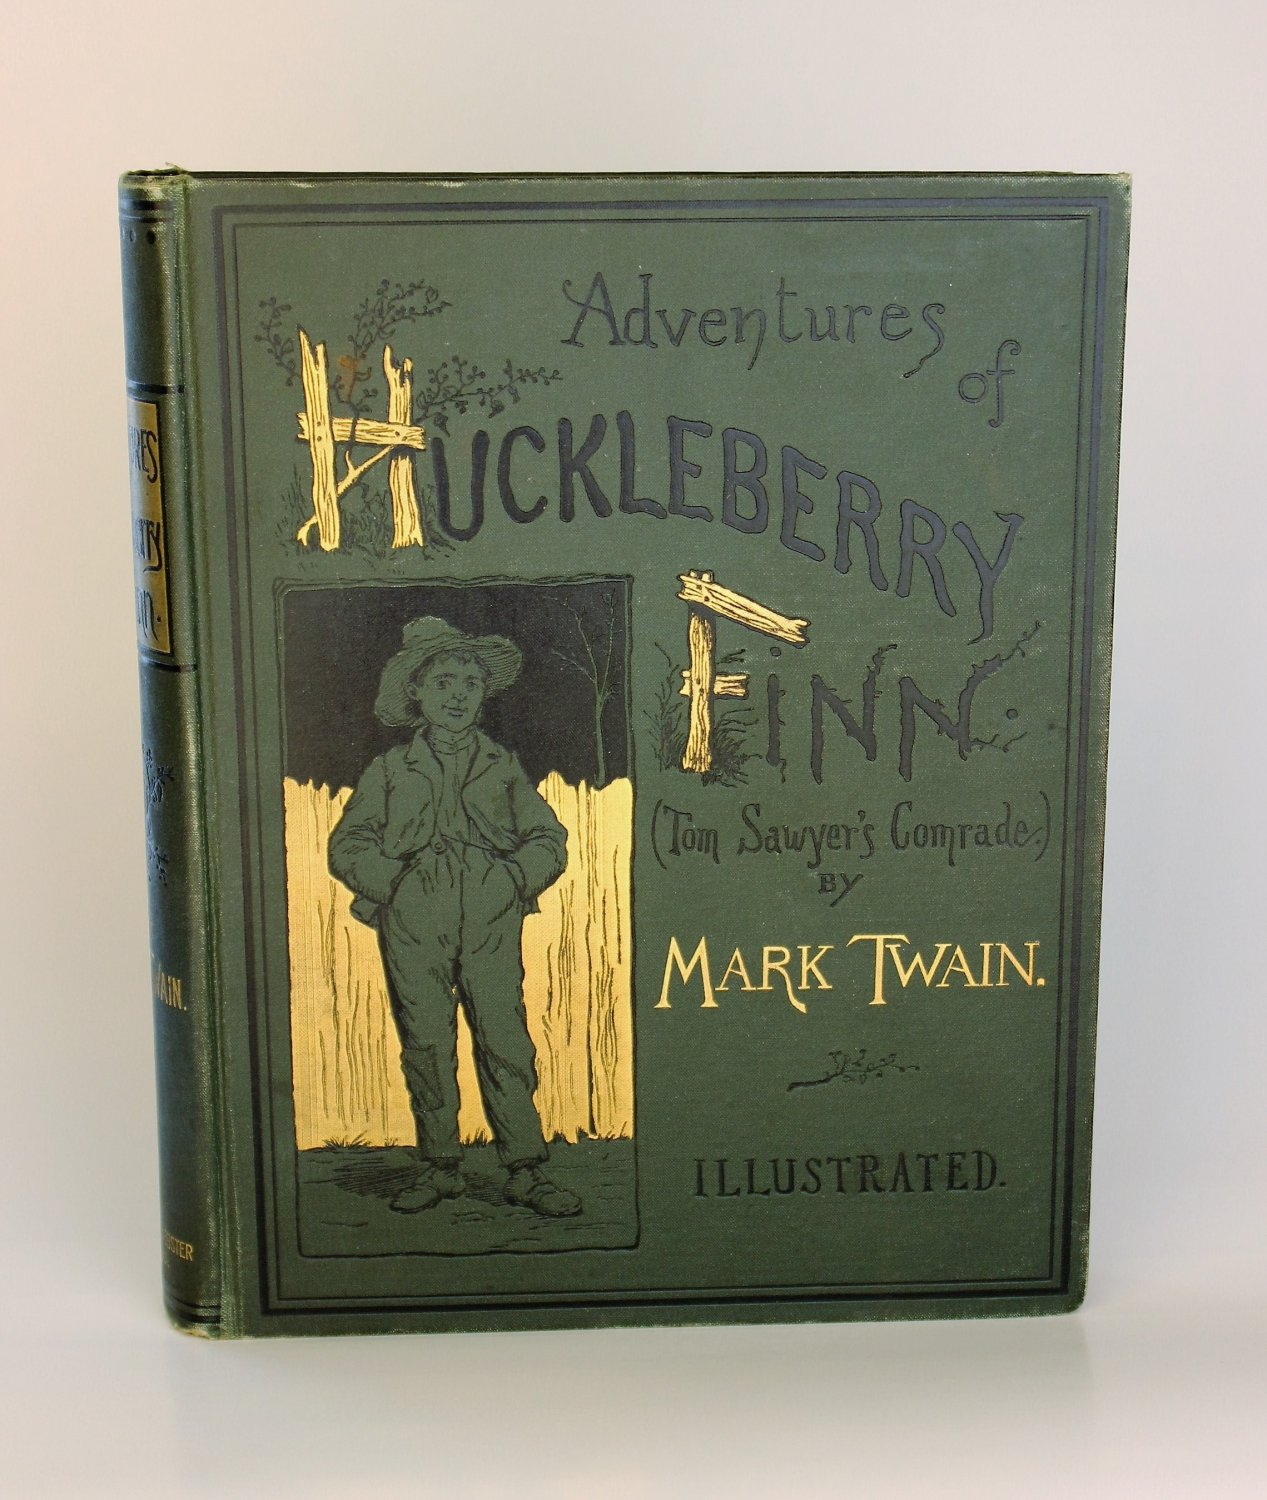 ADVENTURES OF HUCKLEBERRY FINN by Mark Twain 1885 FIRST EDITION Later state